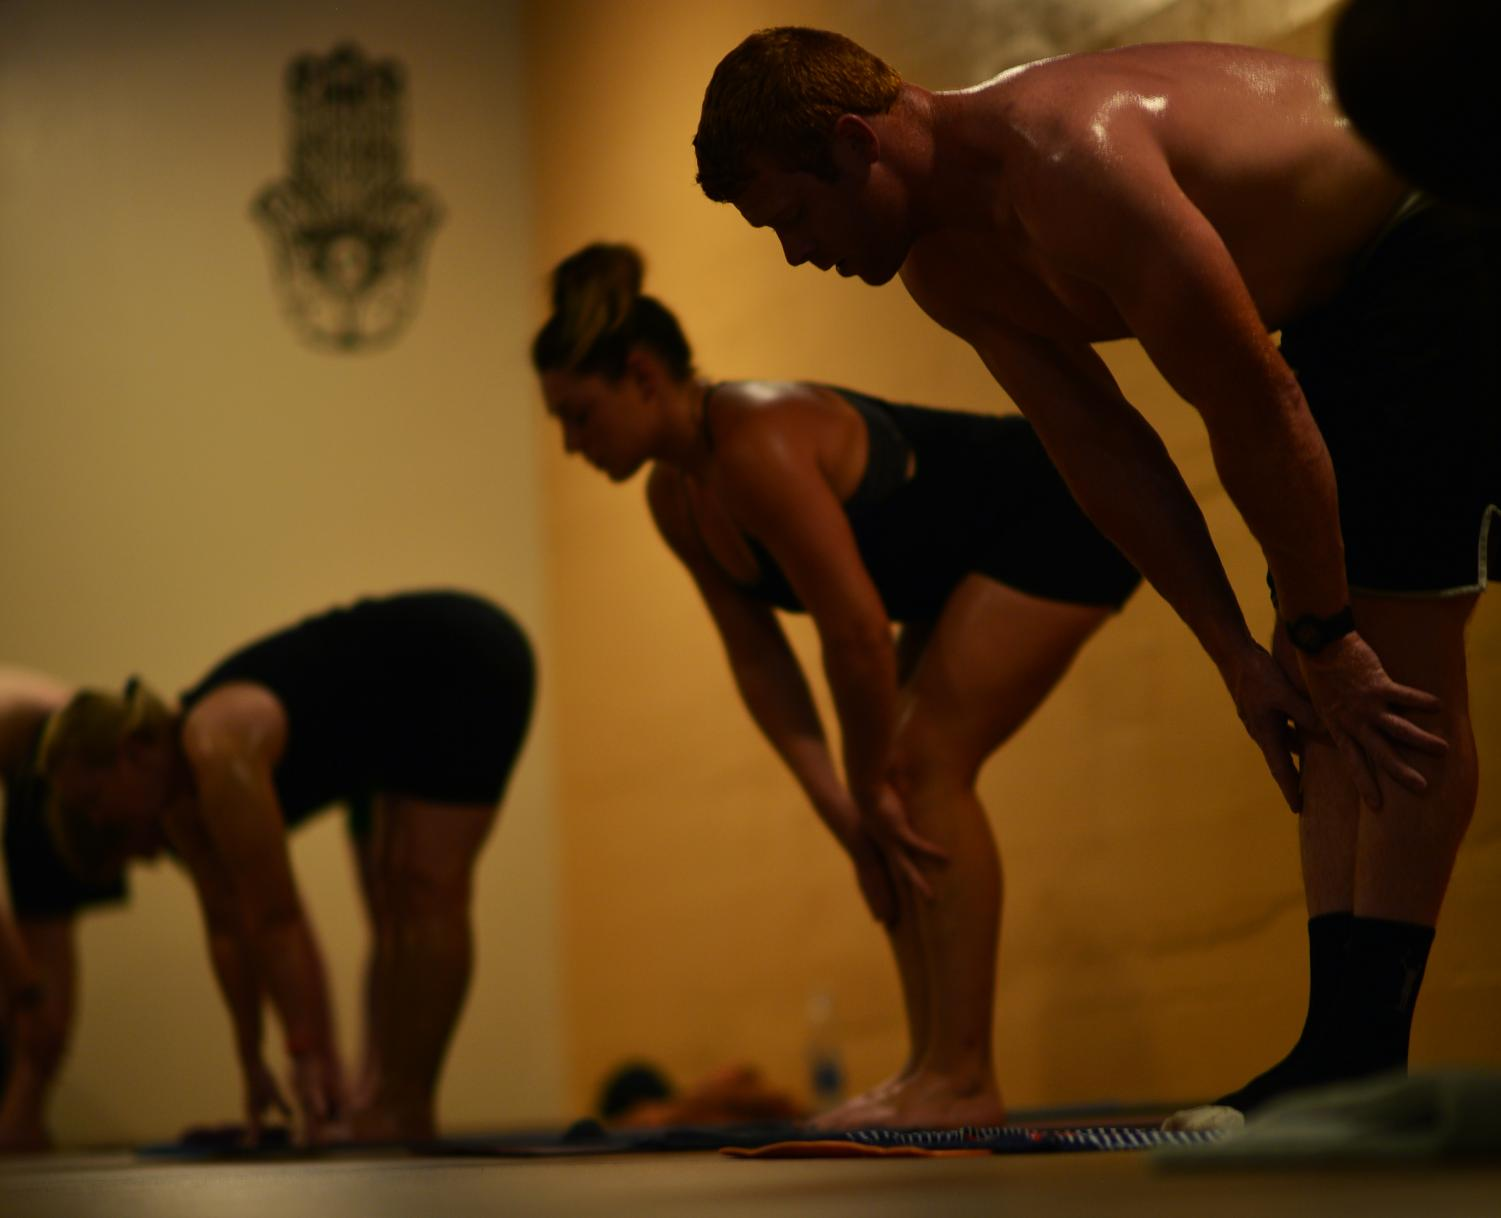 Hot yoga at Sanctuary Yoga involves posing in extremely hot, humid conditions.